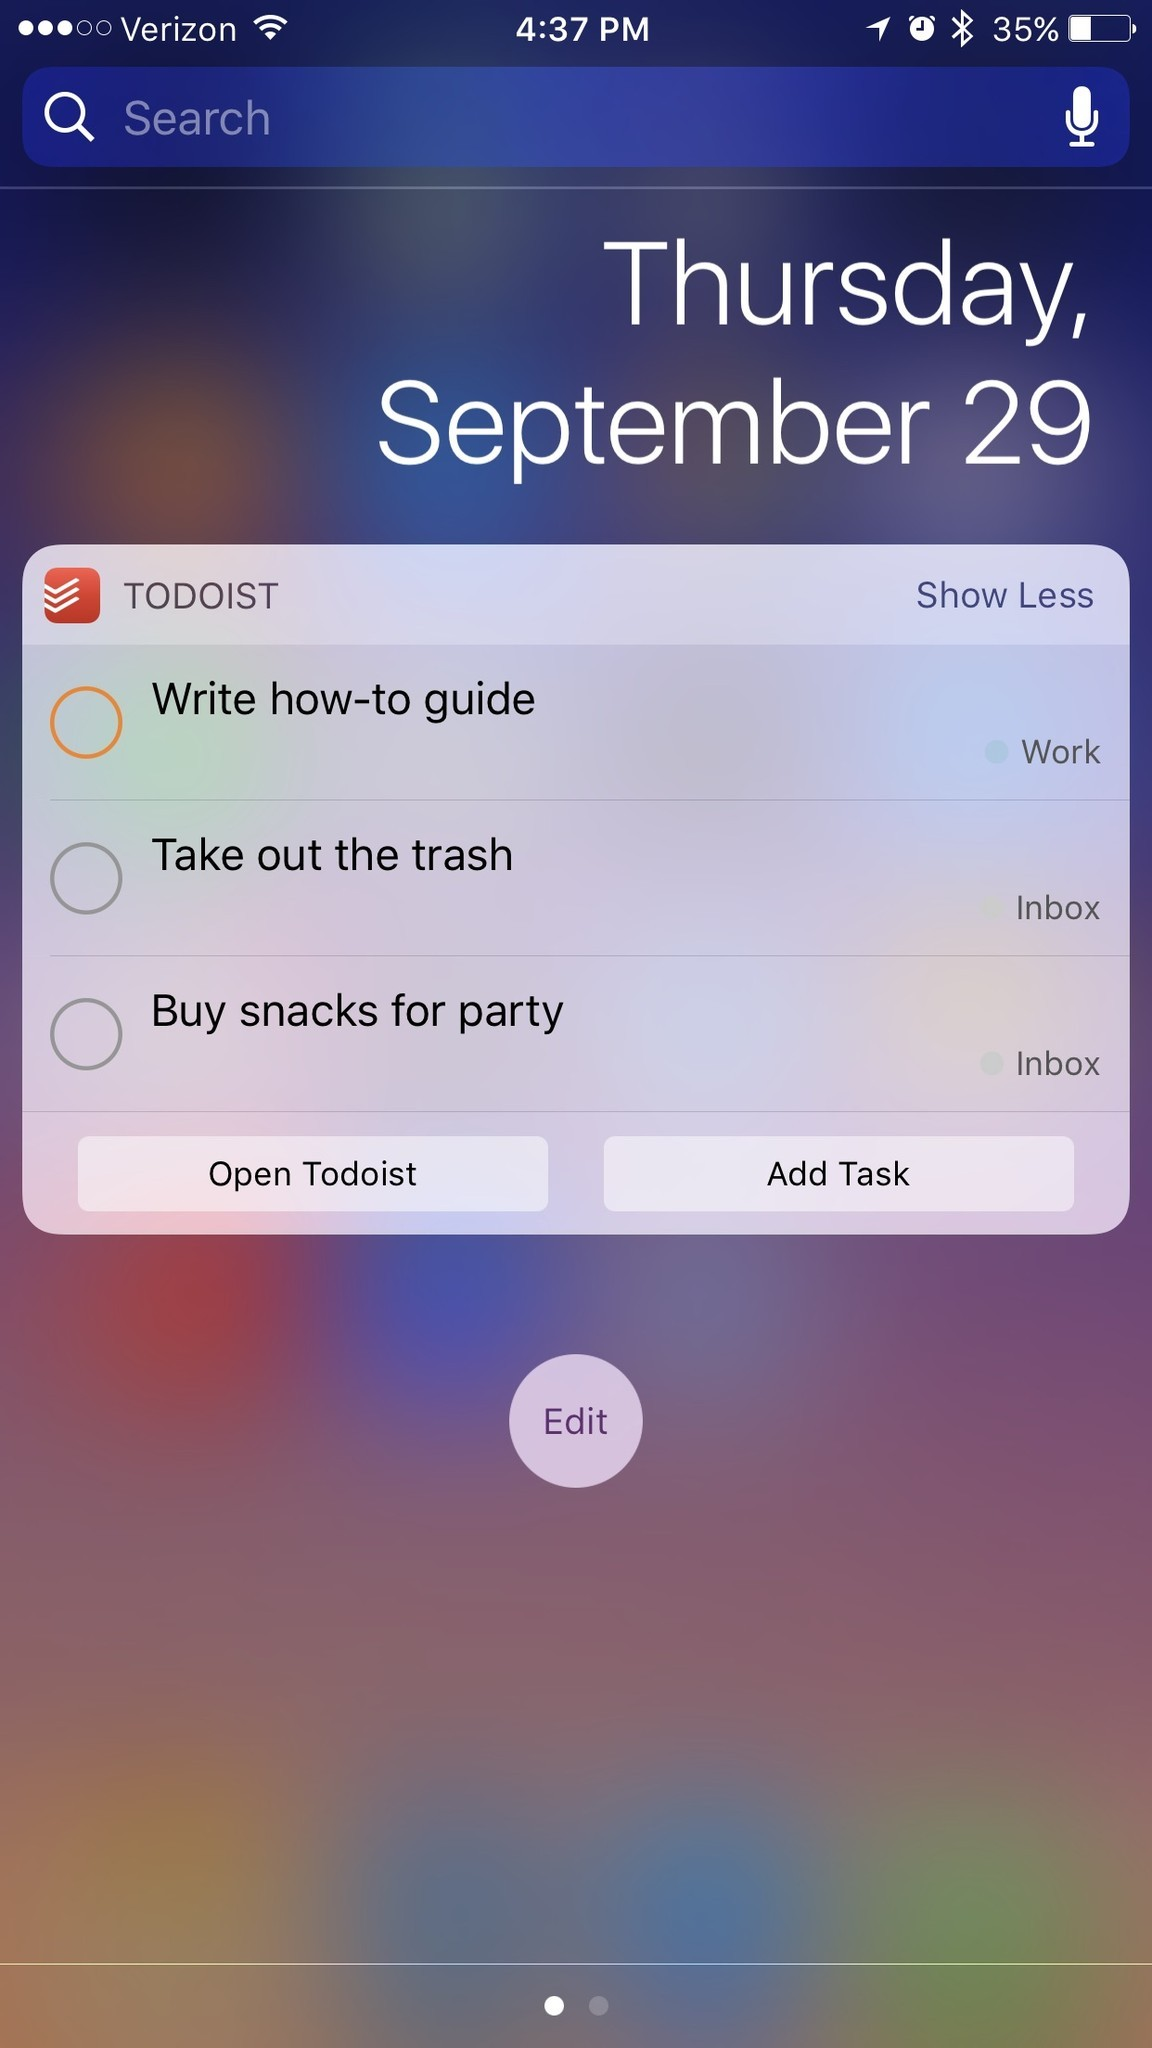 list makers take notice todoist has a new widget that lets you mark off your today tasks right from the lock screen so as you are going about your day